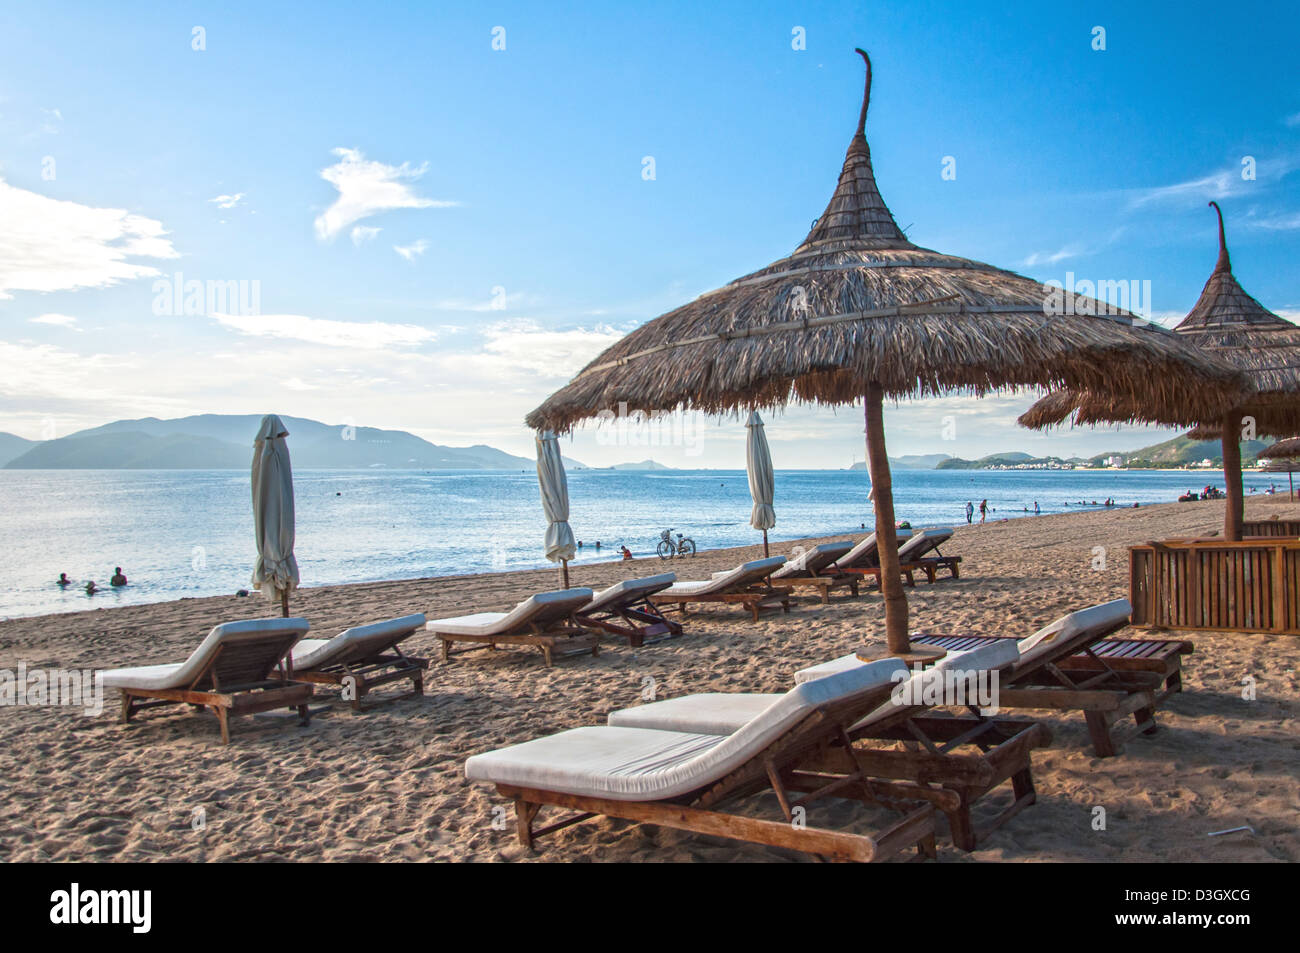 A row of relaxing beds and thatch umbrellas at a beach - Stock Image